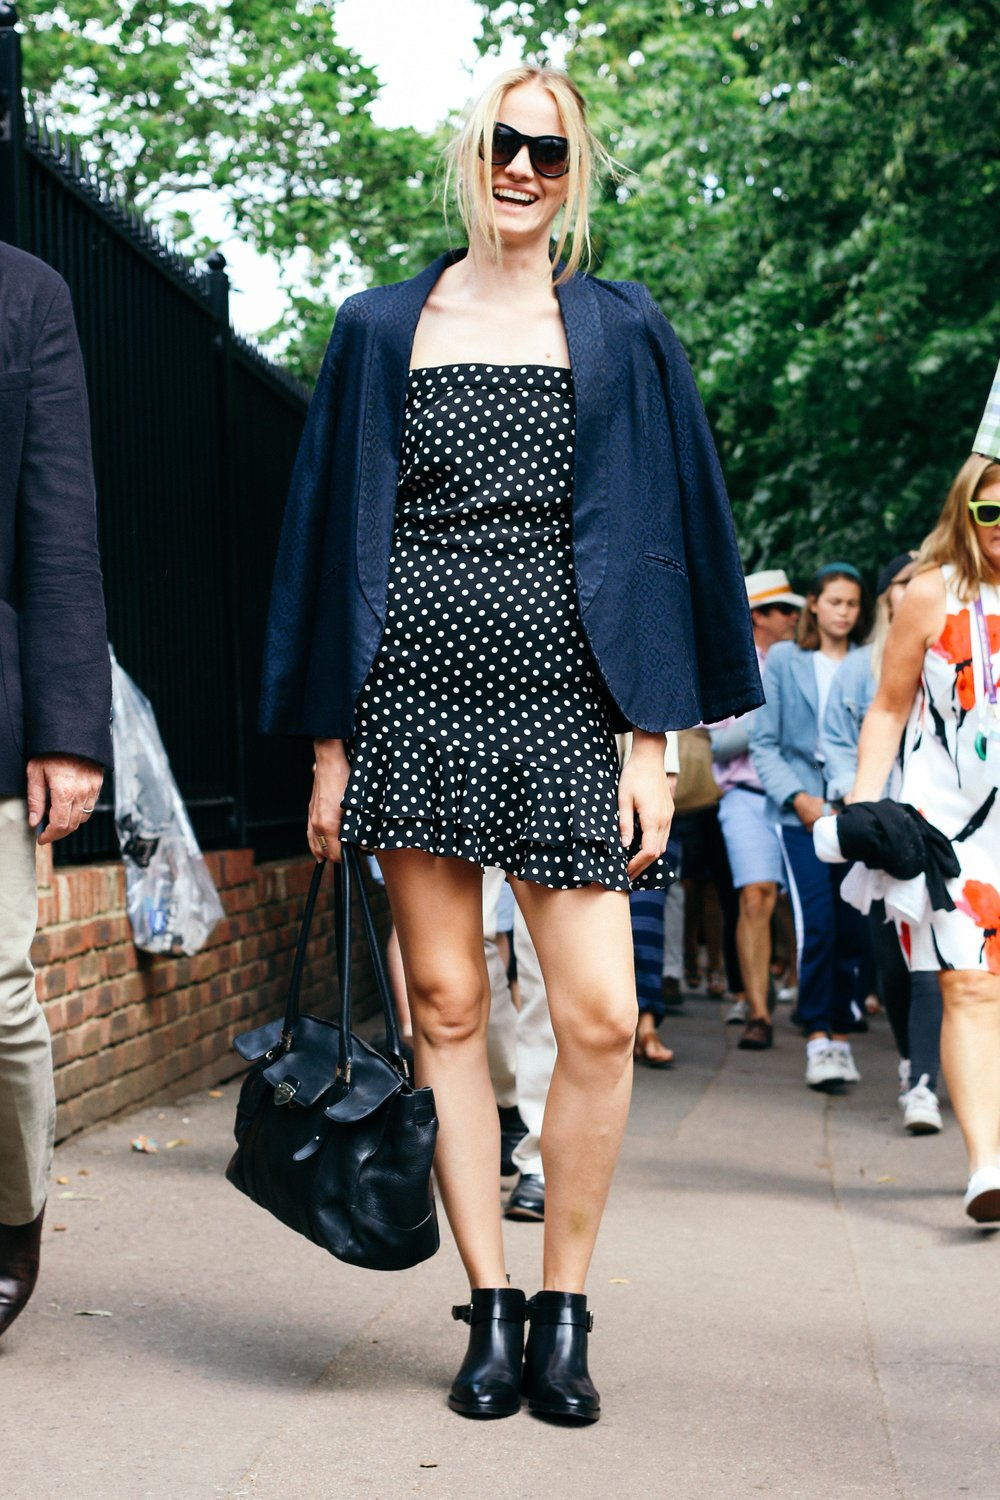 Street fashion stories_Imaginealady_polkadot_dress